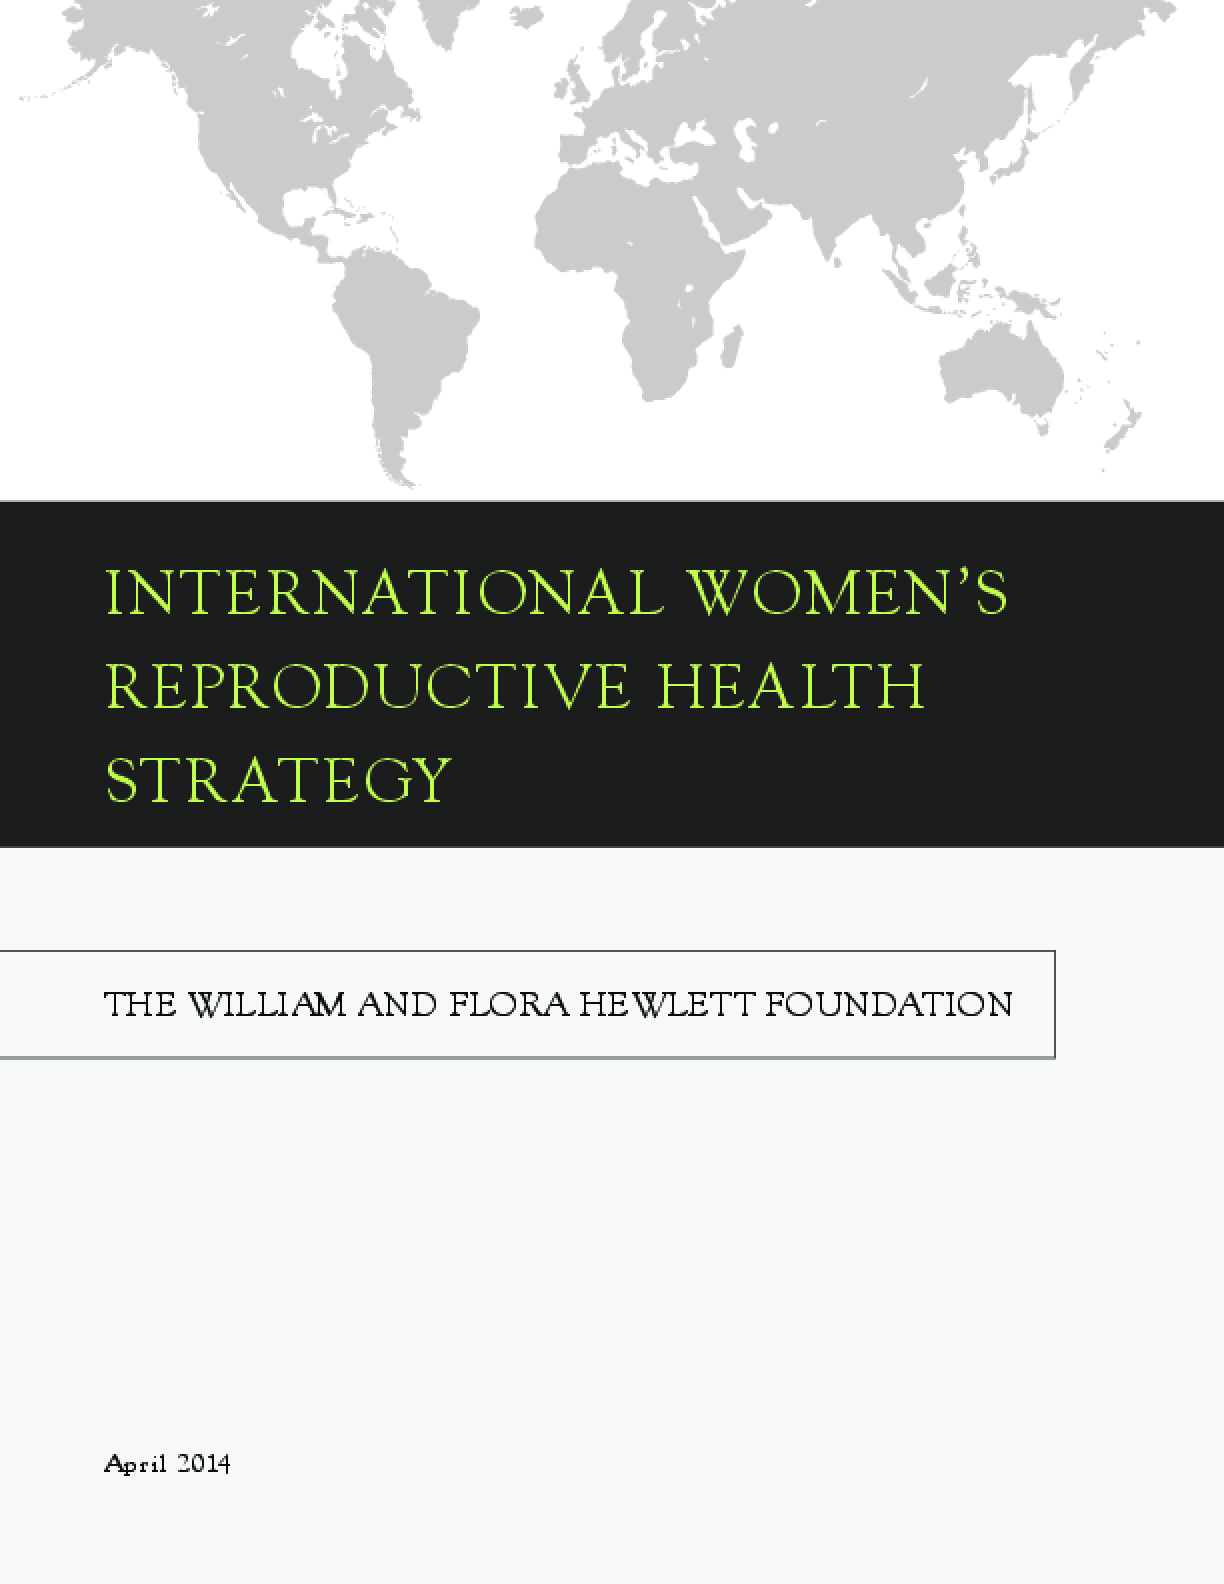 International Women's Reproductive Health Strategy